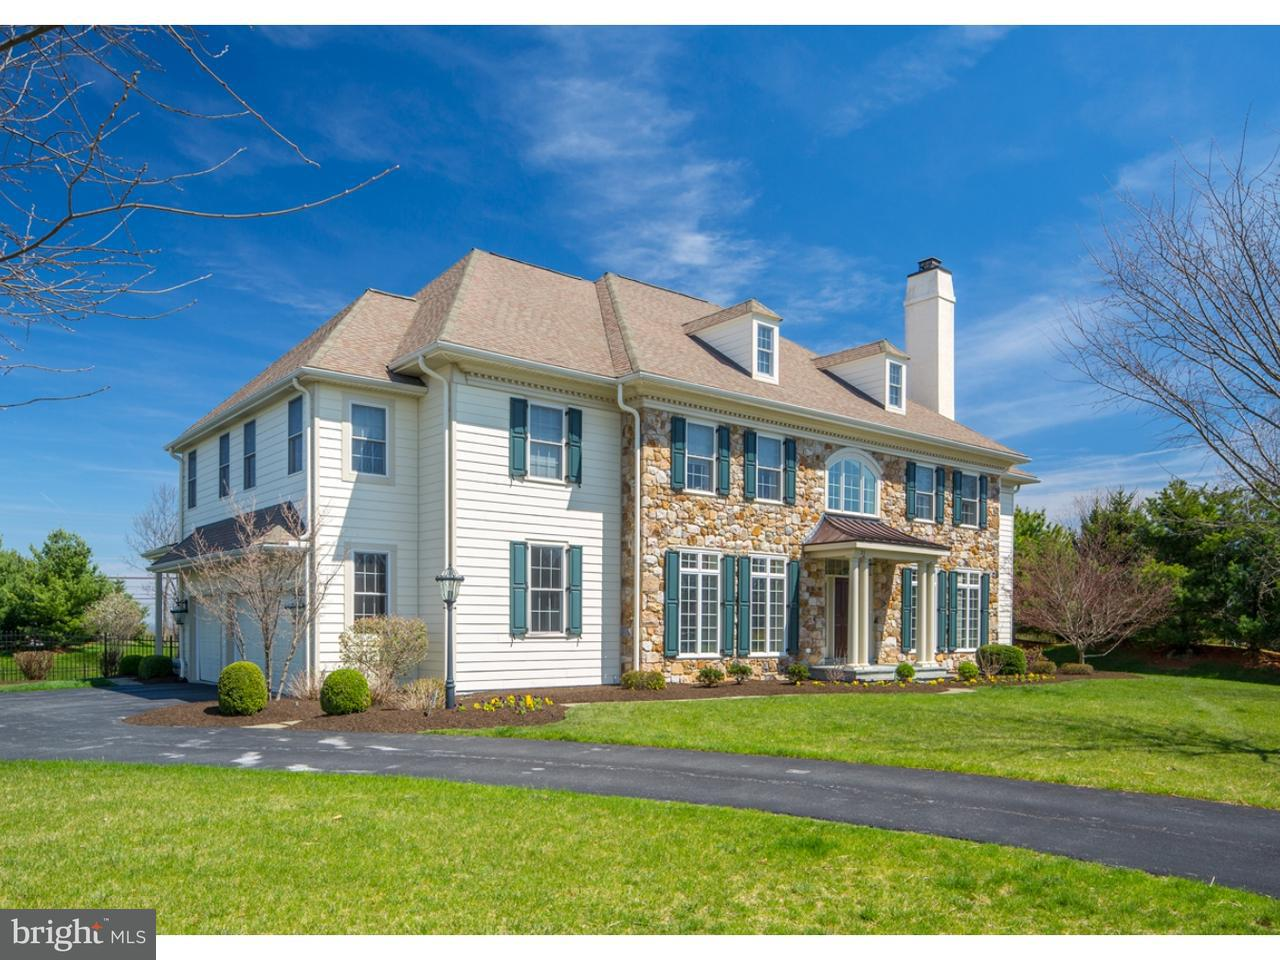 Single Family Home for Sale at 21 EDGEHILL Lane Collegeville, Pennsylvania 19426 United States